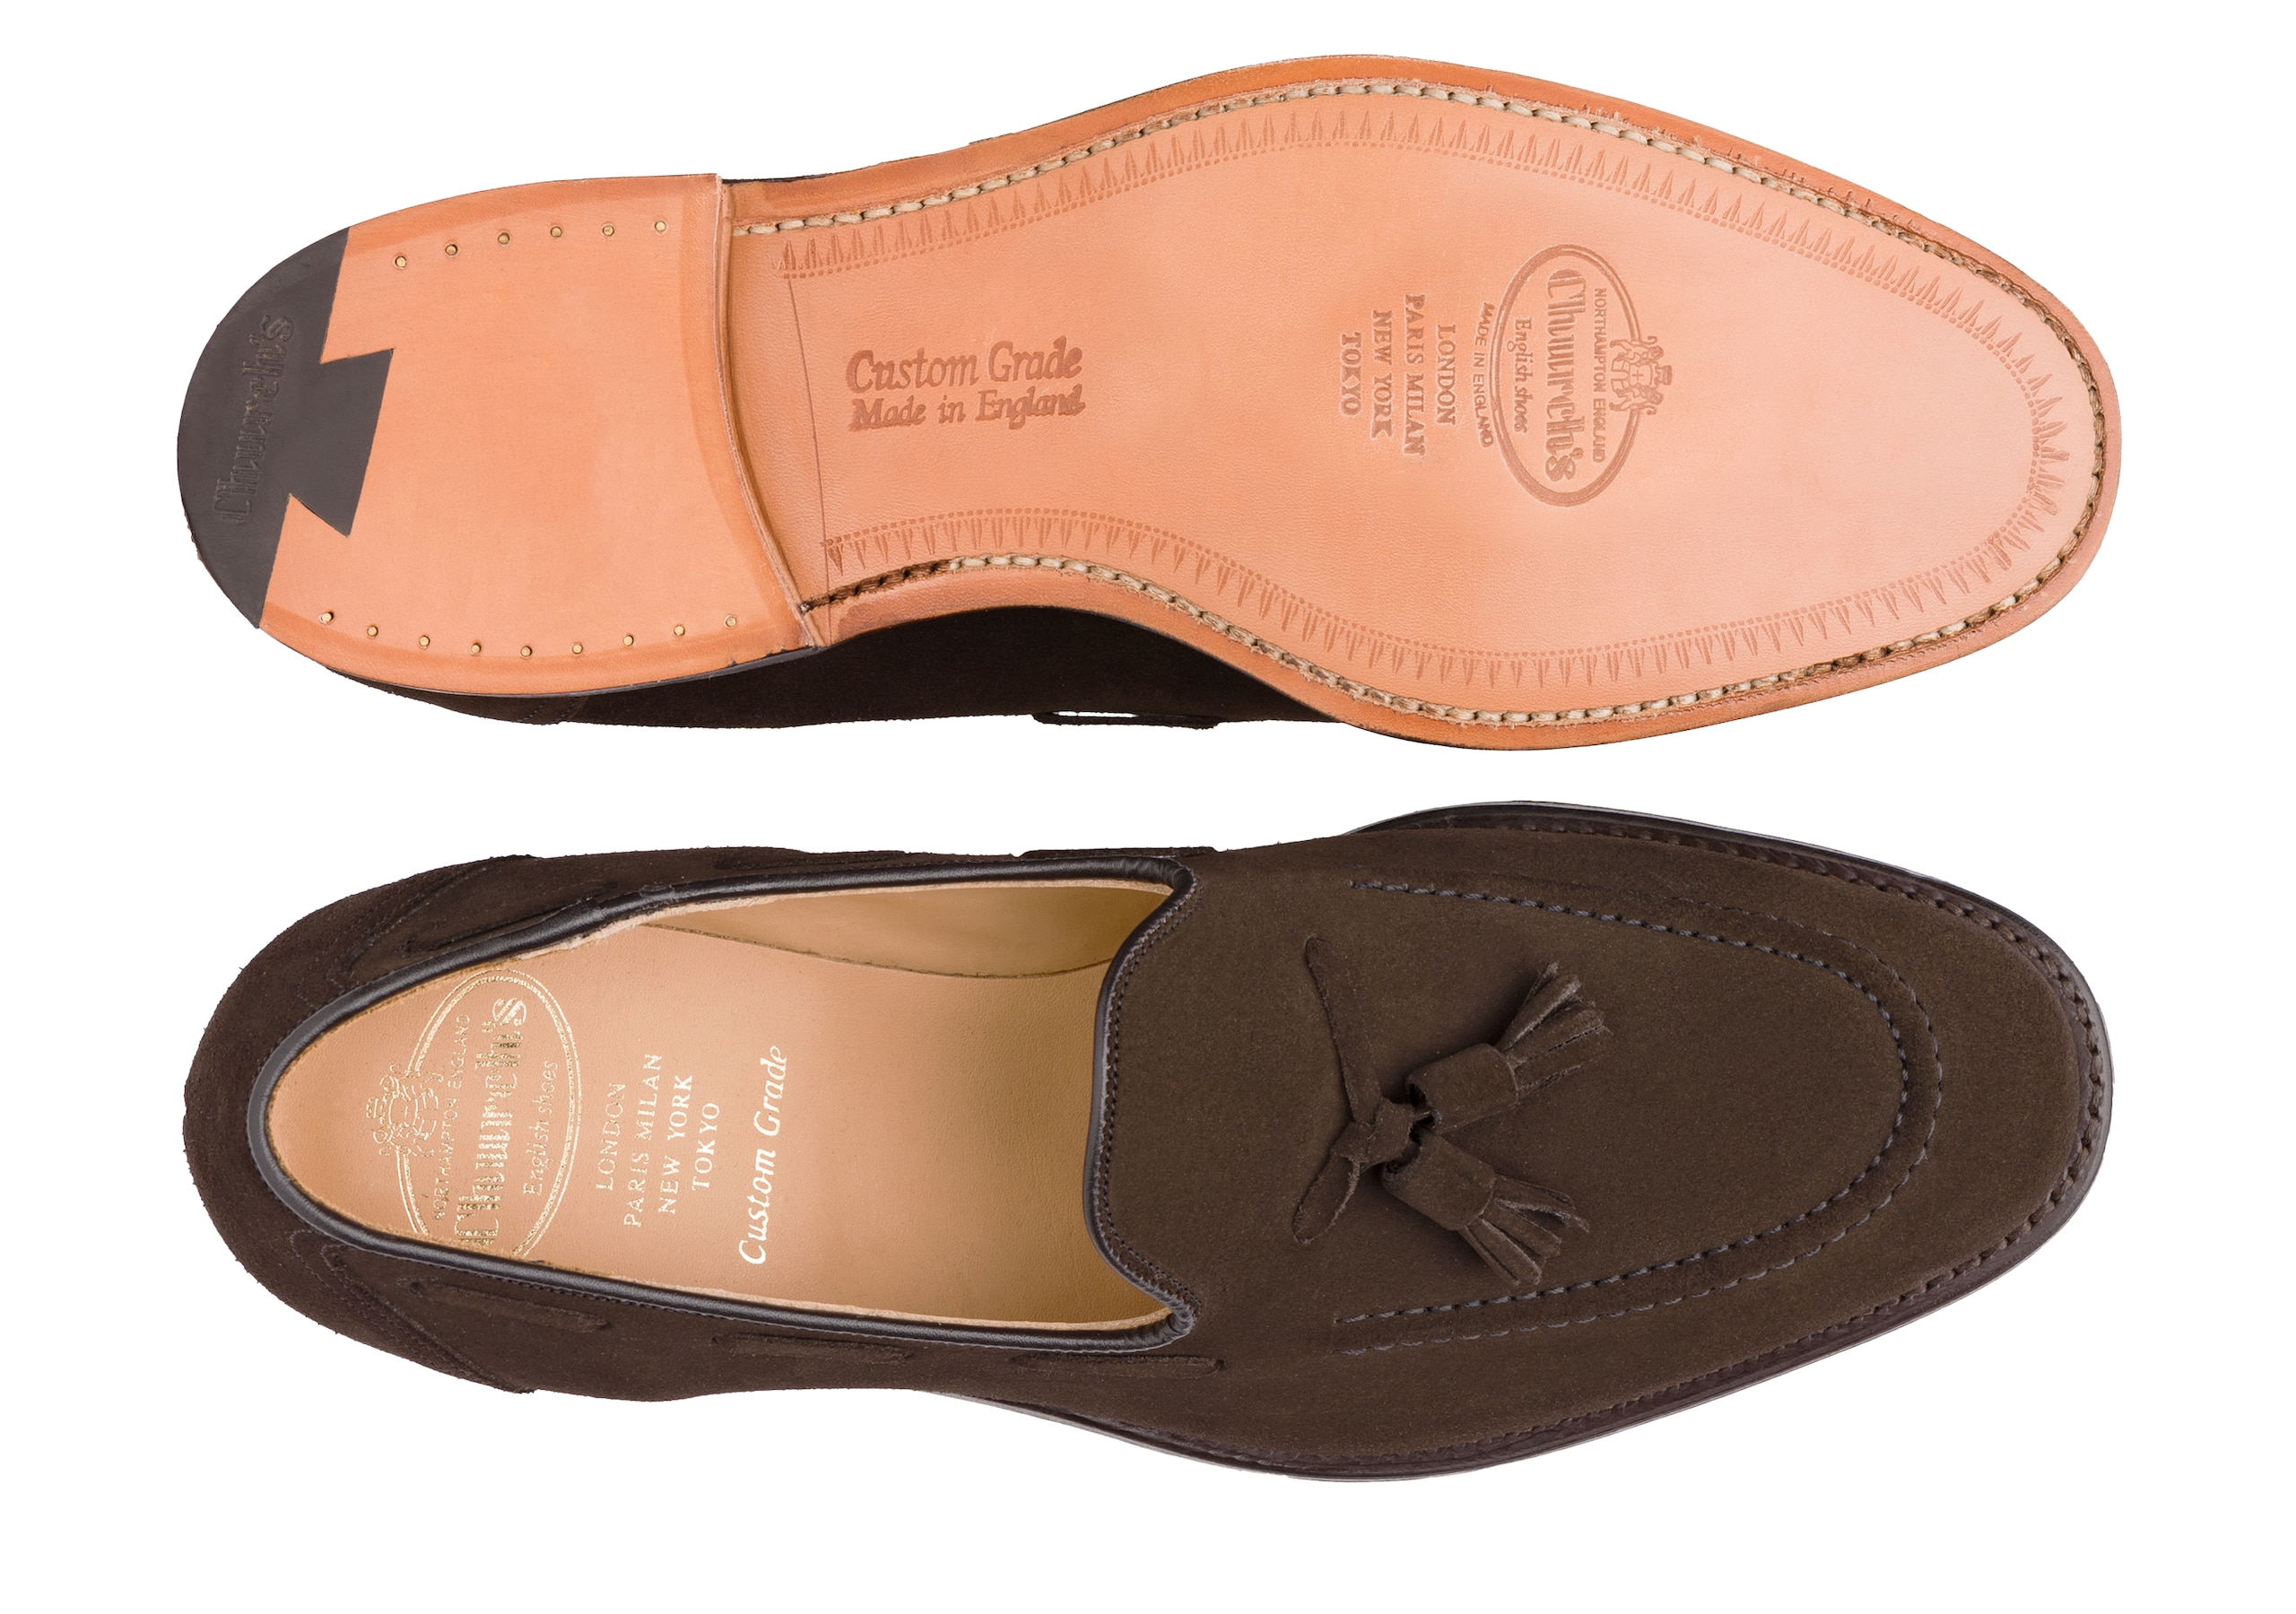 Kingsley 2 Church's Superbuck Loafer Brown